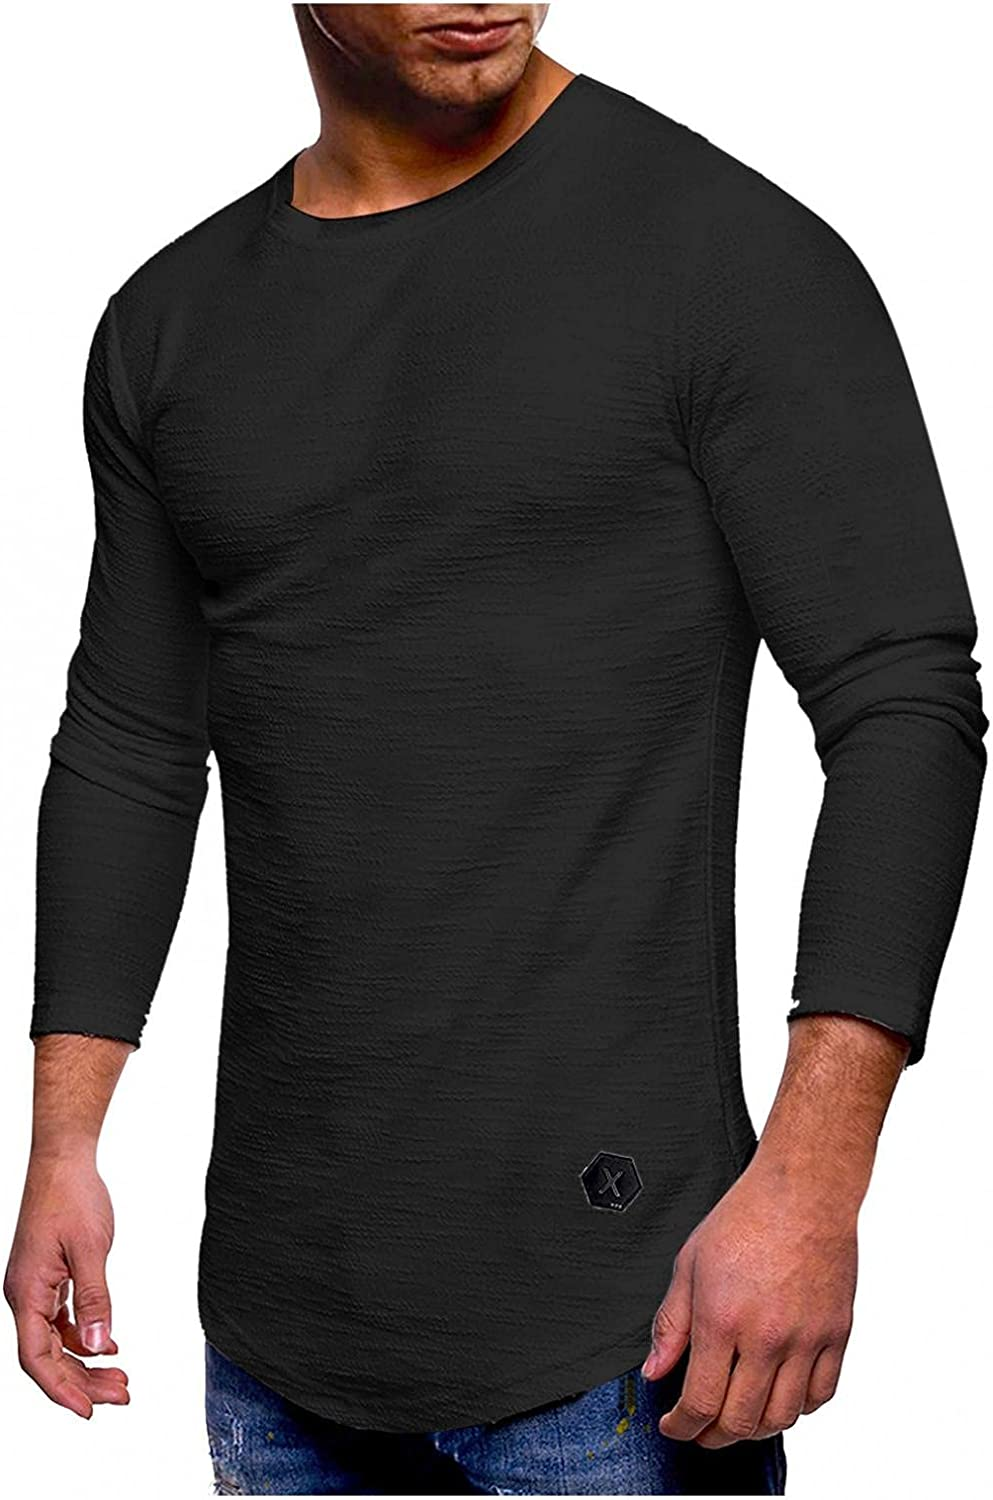 KEEYO Mens Crewneck Muscle T-Shirts Casual Slim Fit Long Sleeve Bodybuilding Gym Workout Athletic Fall Shirts Tops